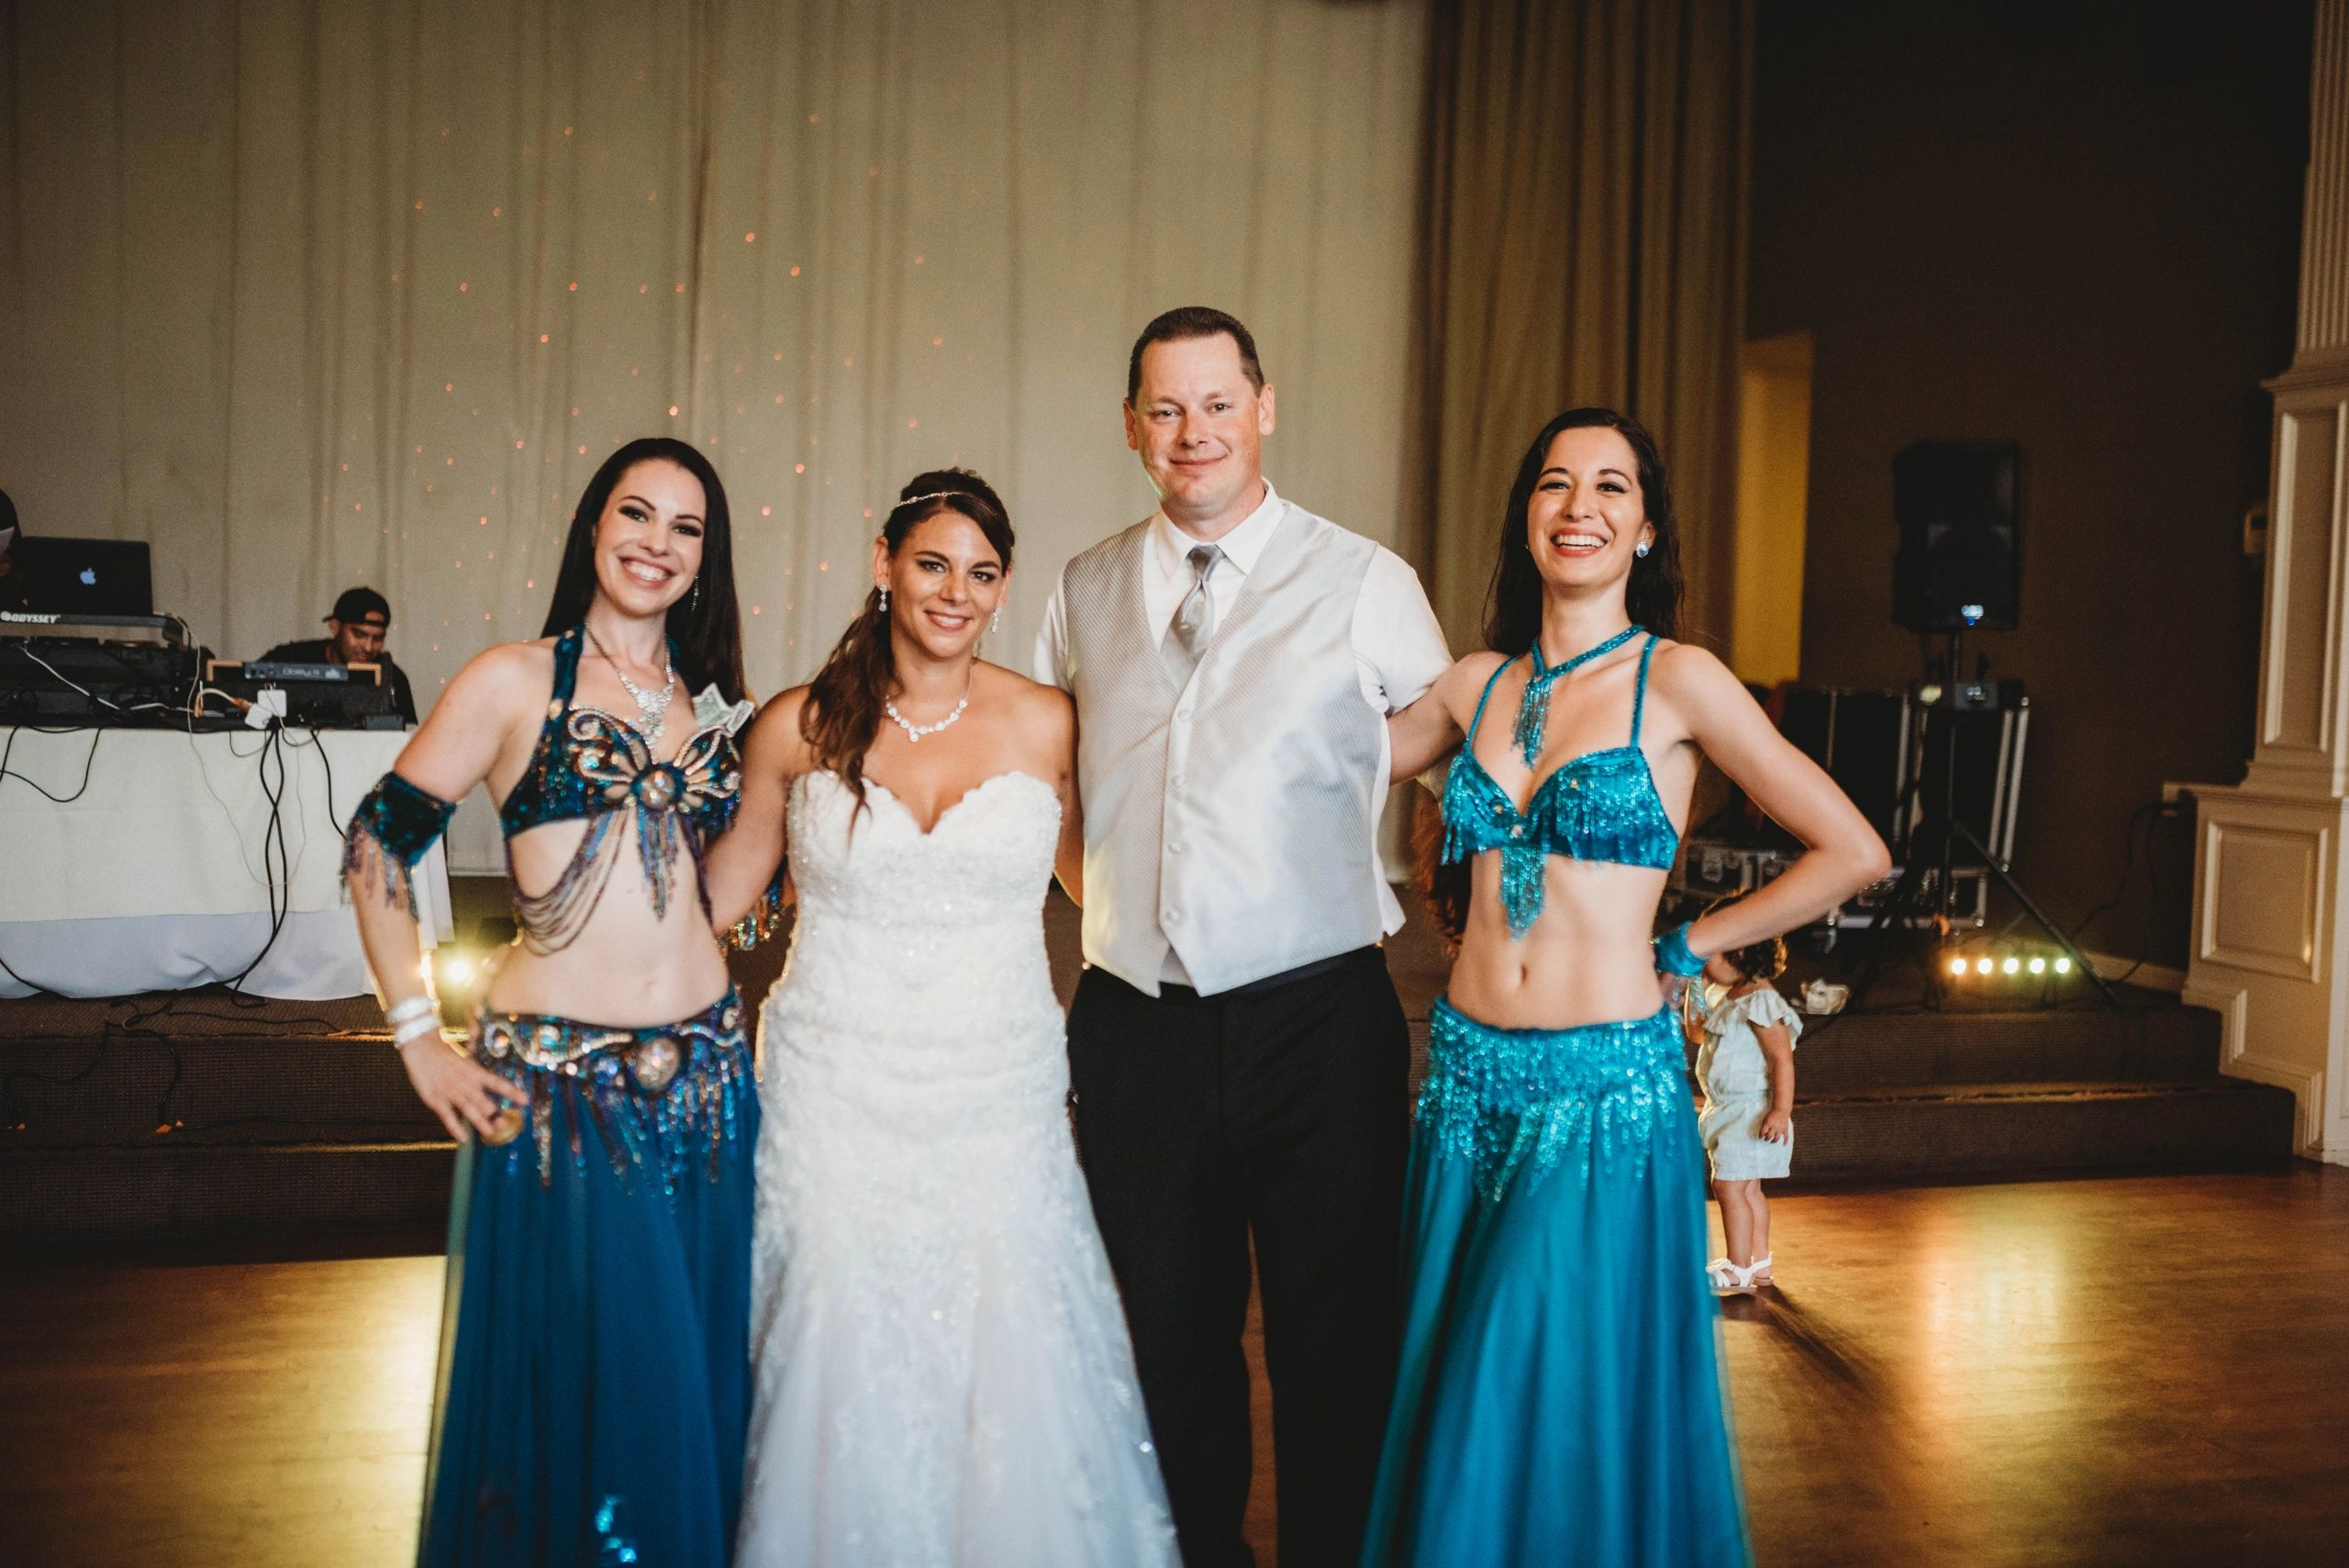 Mychelle Crown, Bellydance and Pilates in Northern California.  Weddings, classes, parties, events.